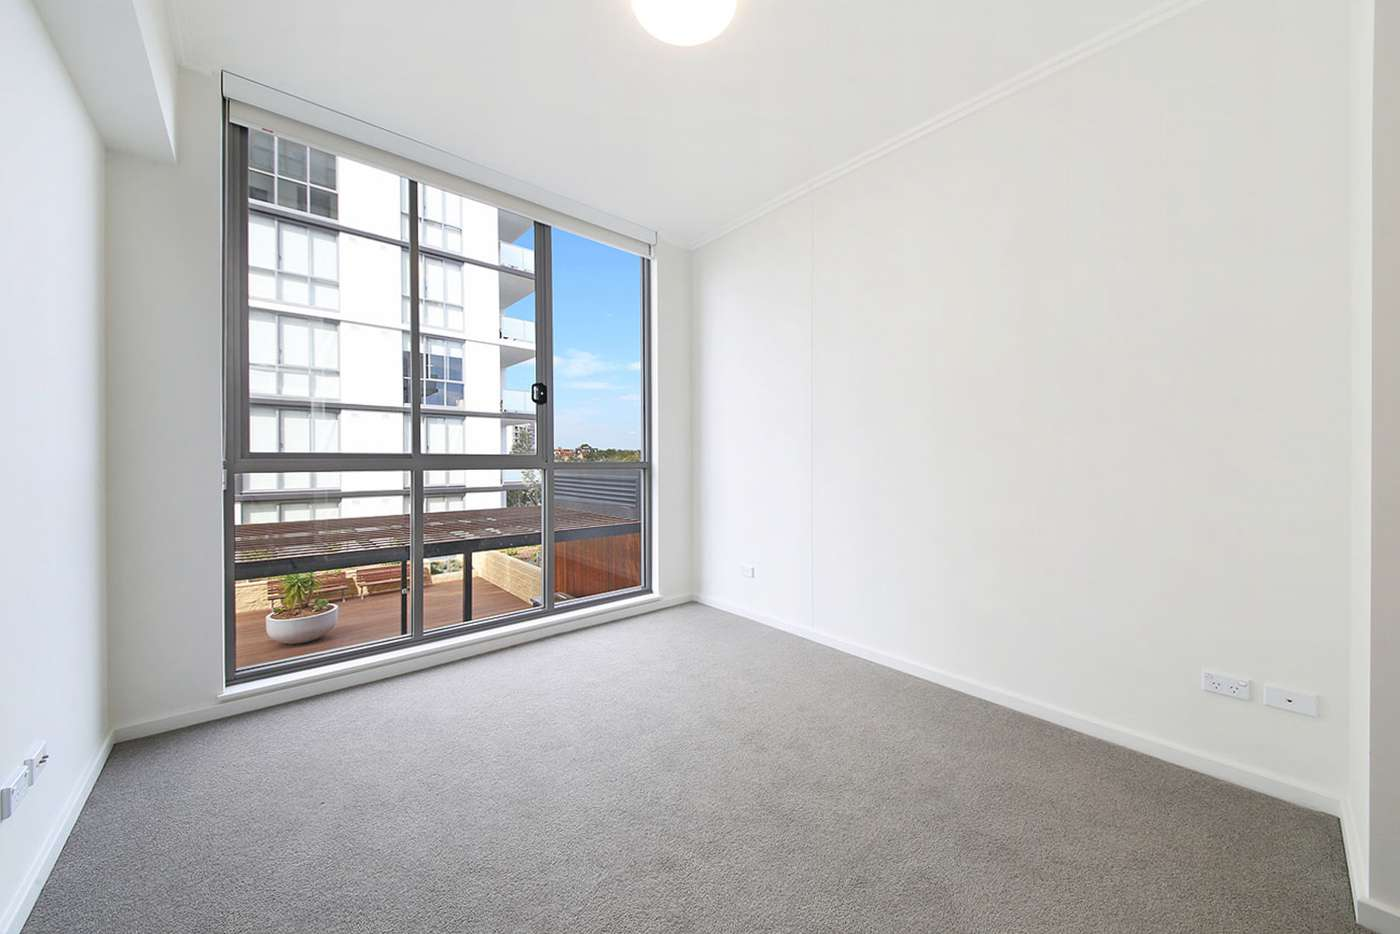 Sixth view of Homely apartment listing, 321/1-39 Lord Sheffield Circuit, Penrith NSW 2750